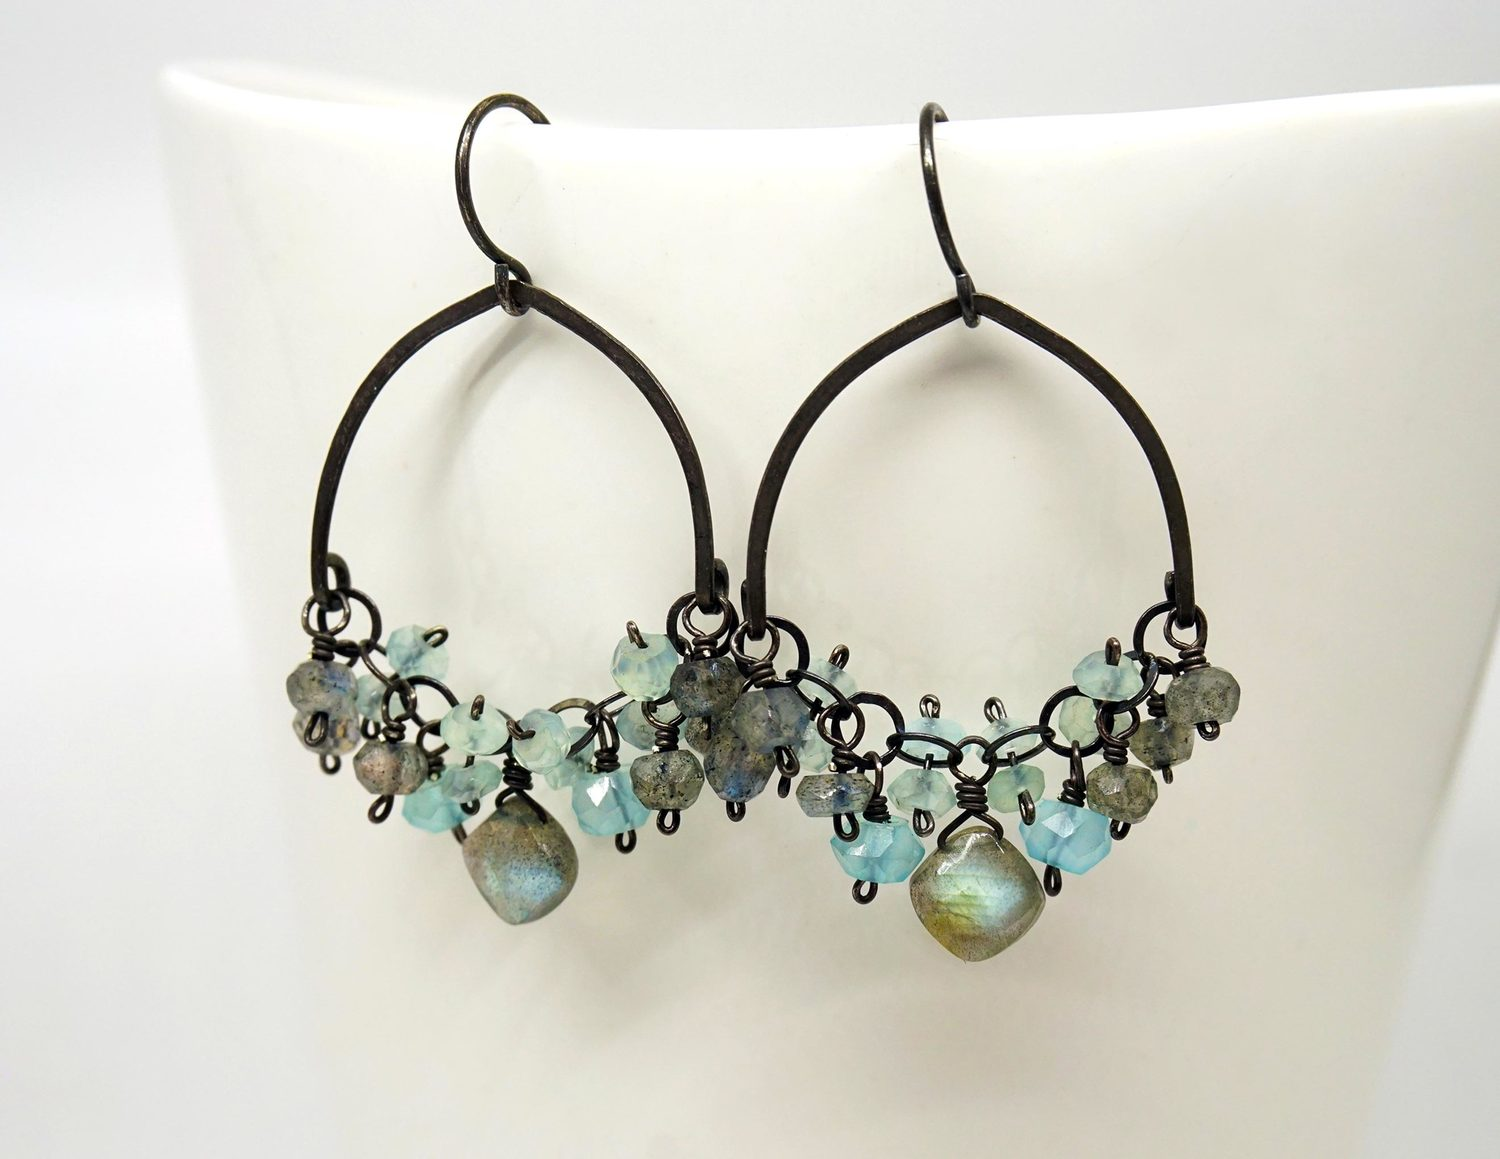 Calliope - Seatlle, WA.  Earrings, necklaces, & bracelets of oxidized sterling silver with pearls or semi-precious stones.